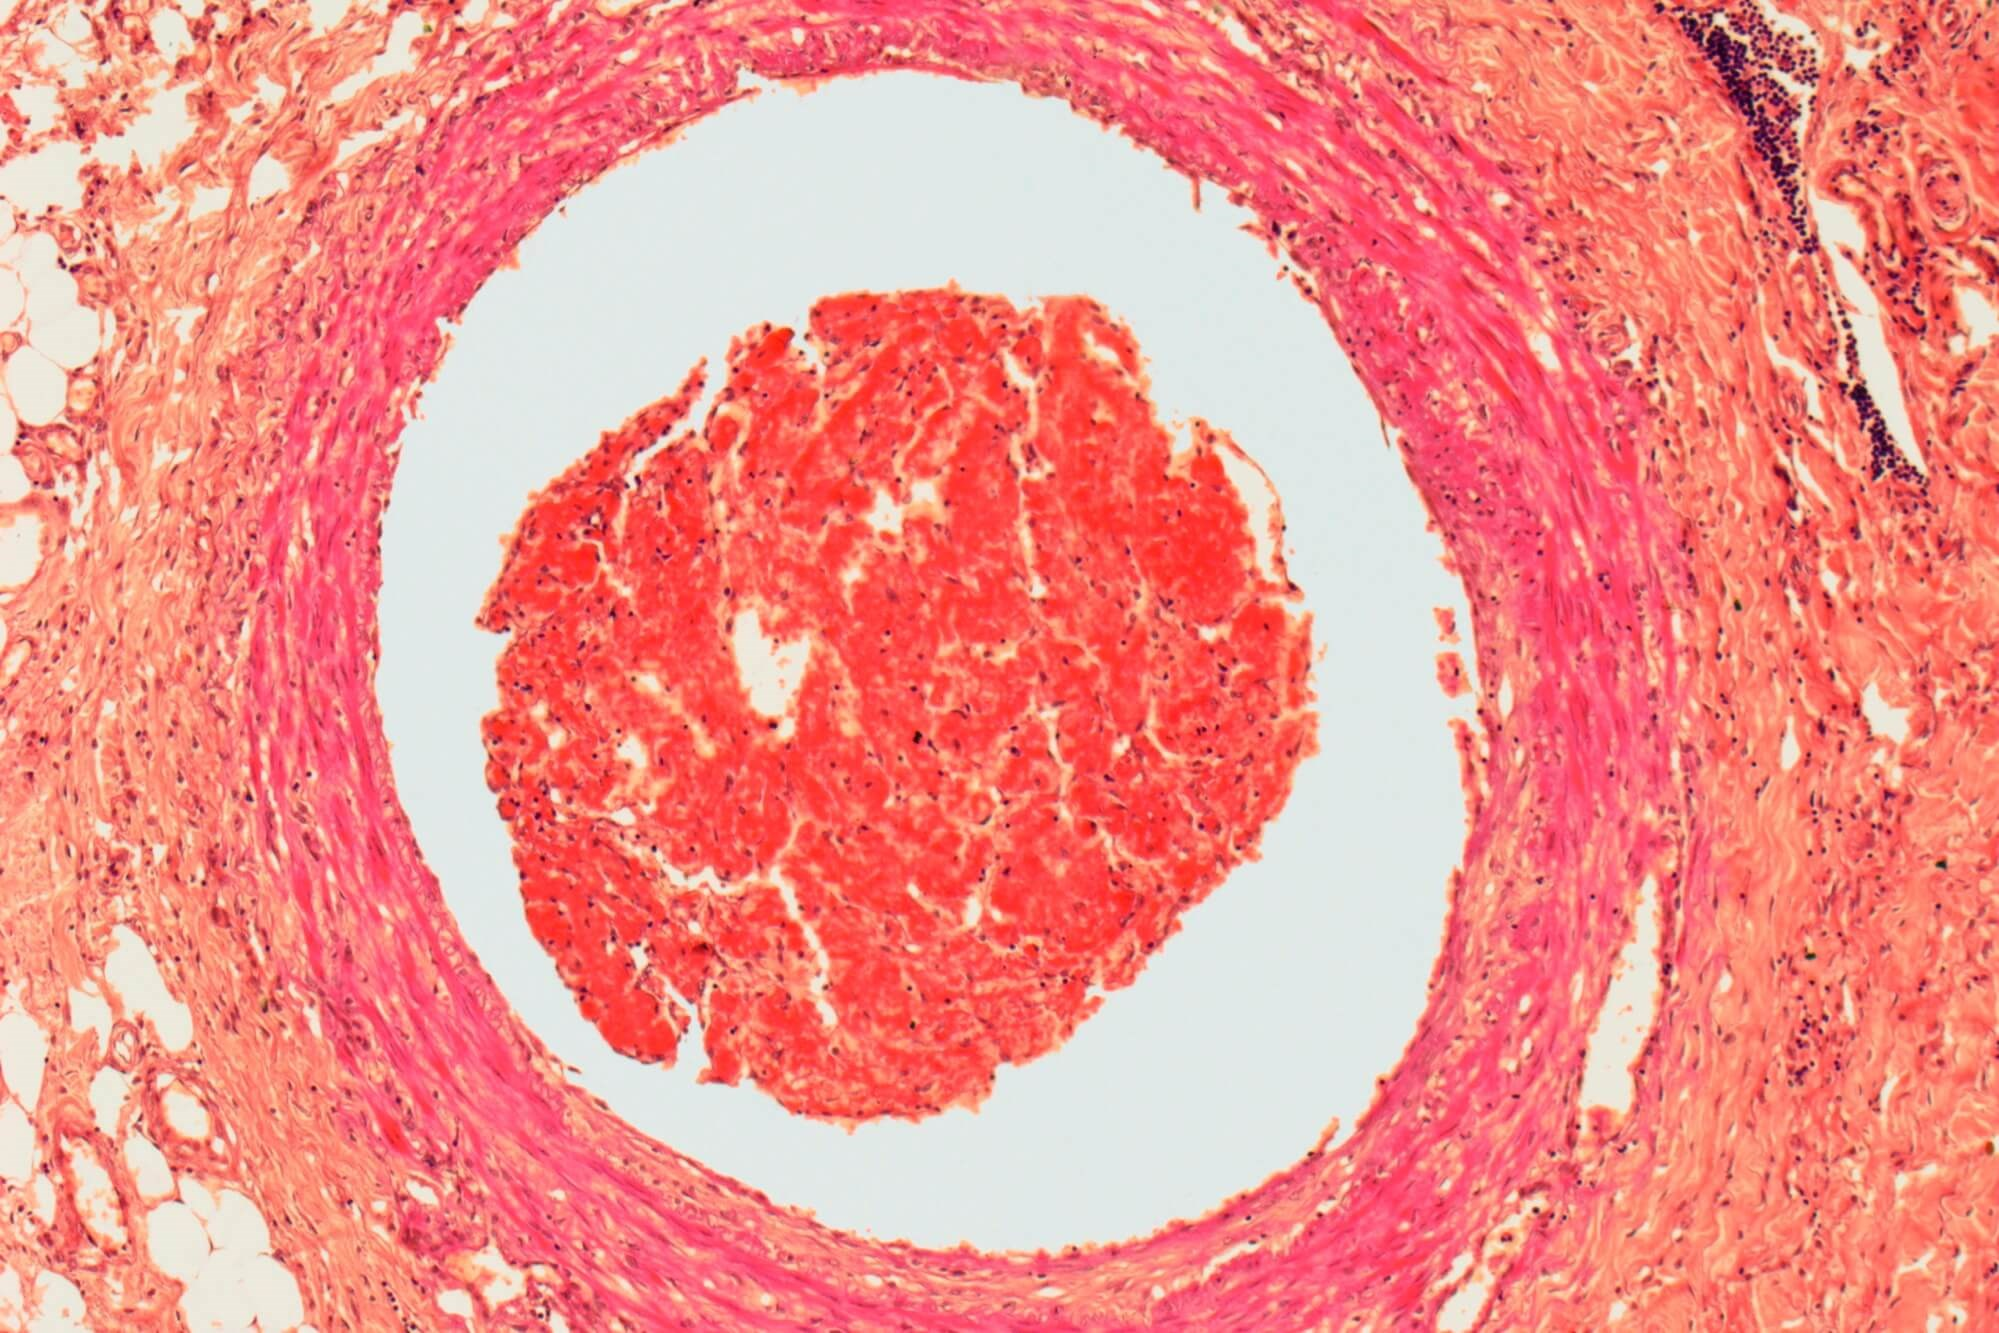 Splanchnic Vein Thrombosis May Increase Risk for Arterial Cardiovascular Events